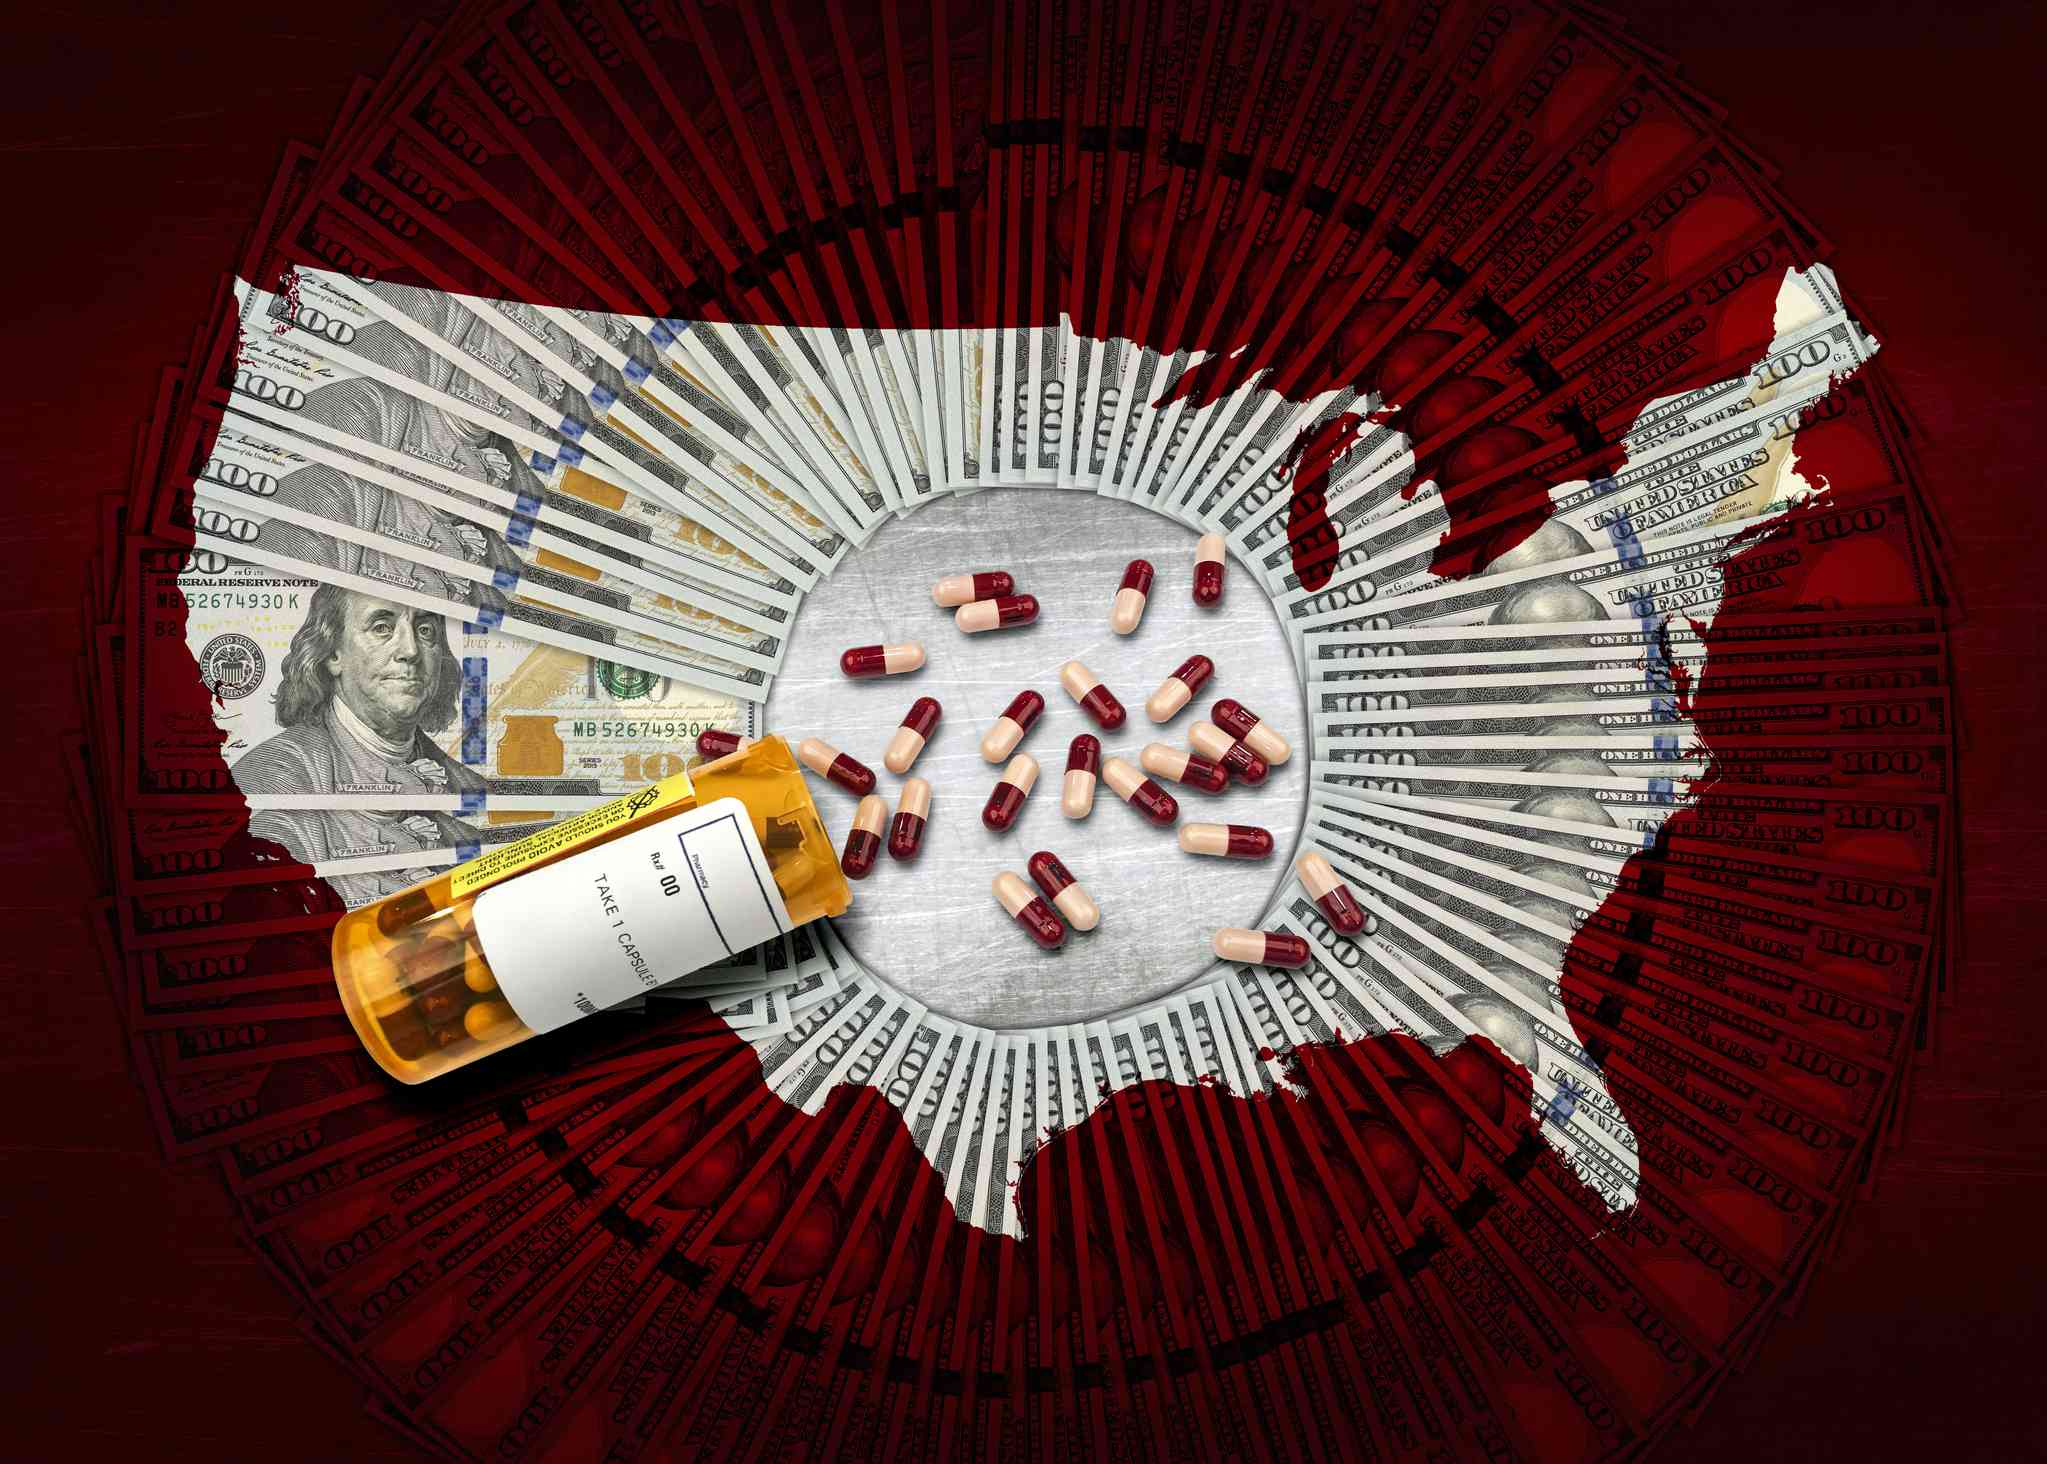 Map of the US made of $100 bills with a pill bottle in the middle.